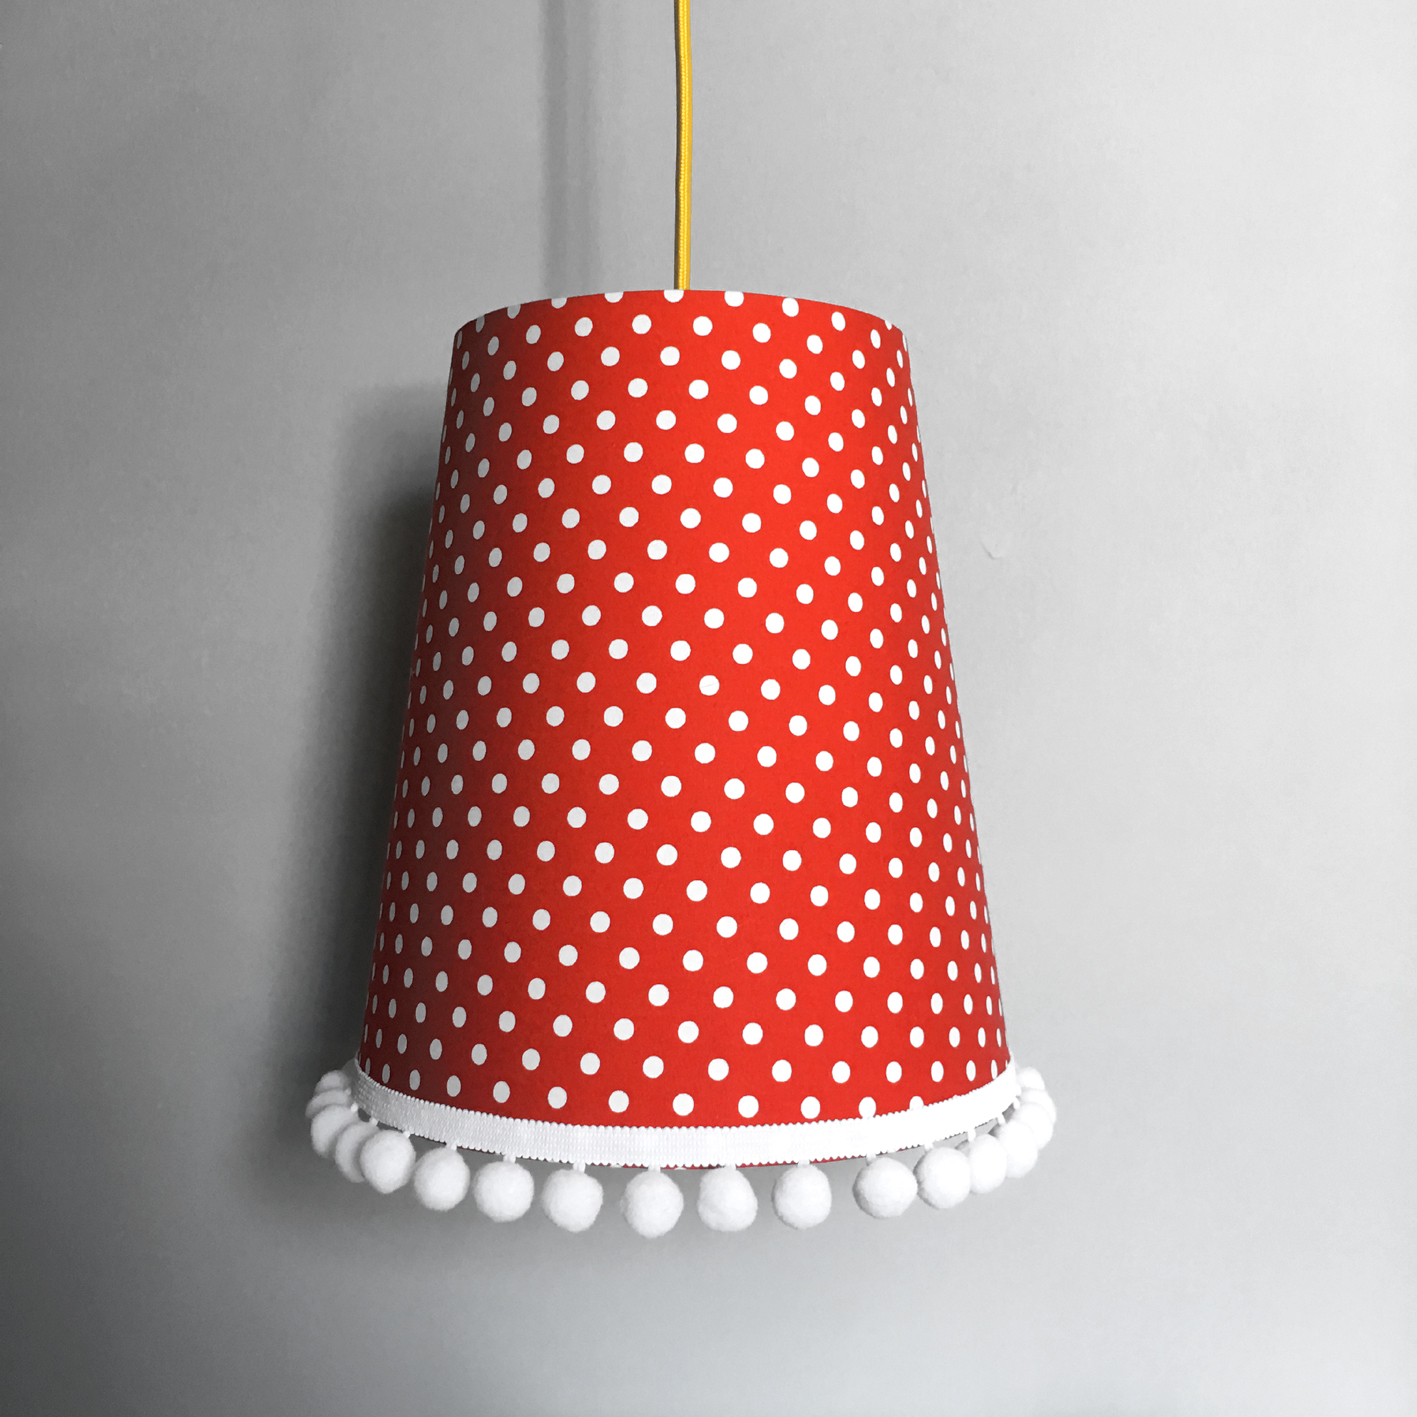 Pom Lampshade In Bright Red Polka Dots